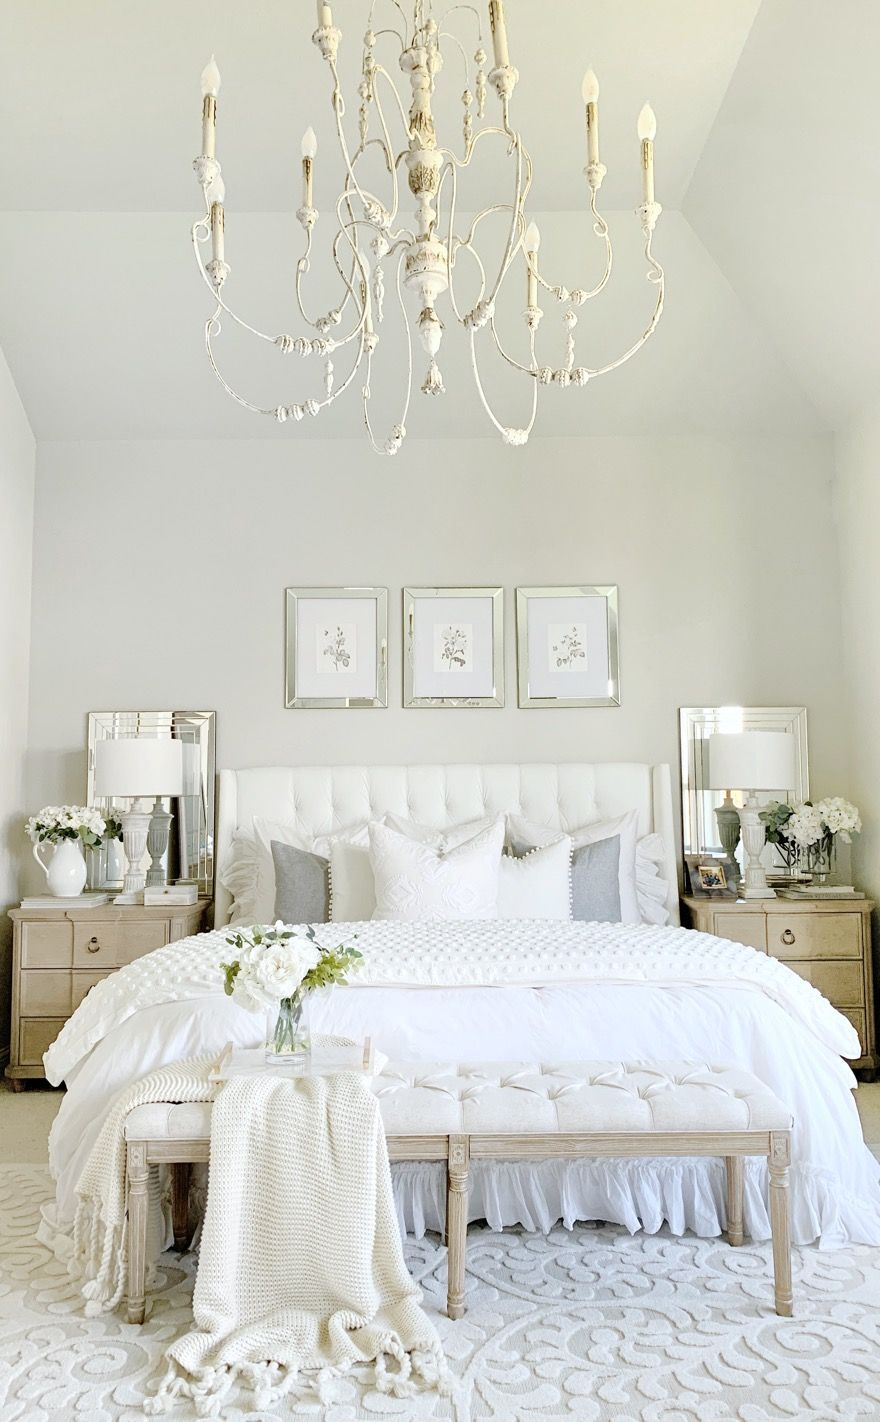 New French Country Bedroom Chandelier In 2020 French Country Bedrooms Country Bedroom Bedroom Sitting Room